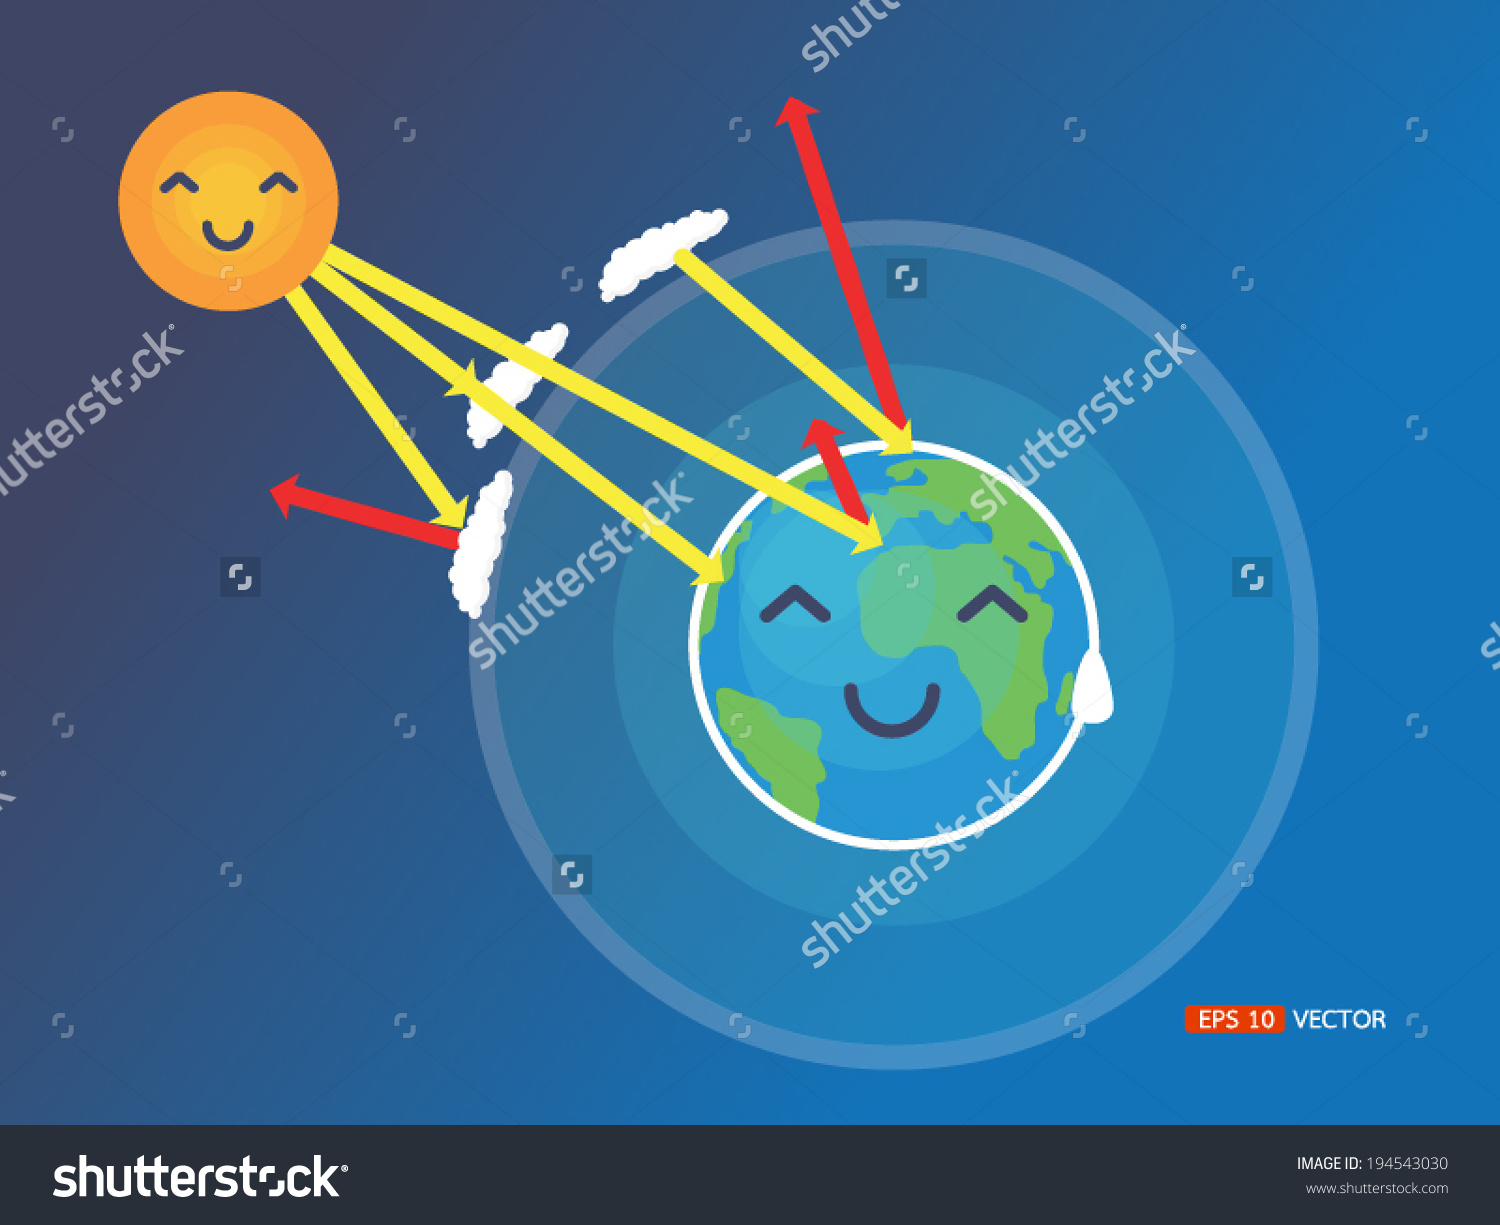 Clipart earth atmosphere. Greenhouse panda free